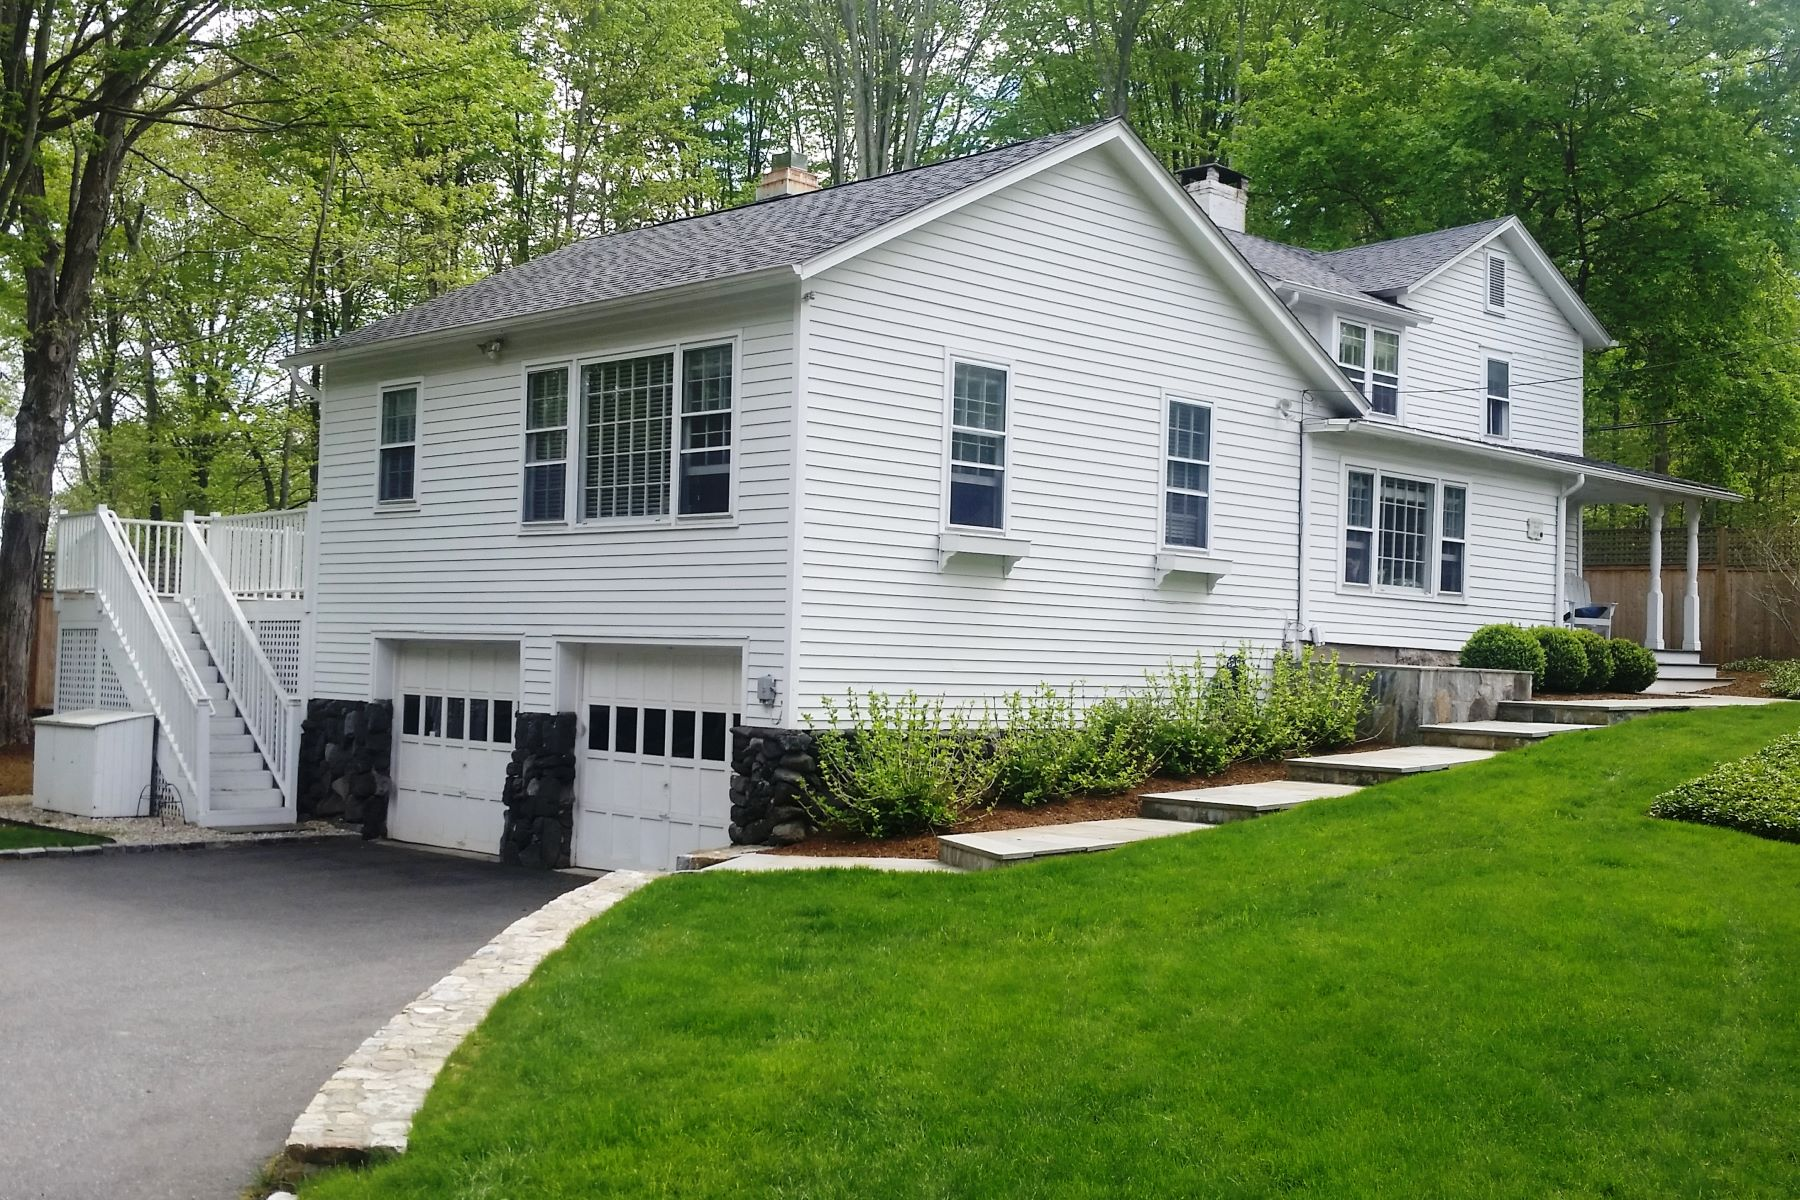 Single Family Homes for Sale at Delightful Antique with Personality 35 Cedar Road Wilton, Connecticut 06897 United States